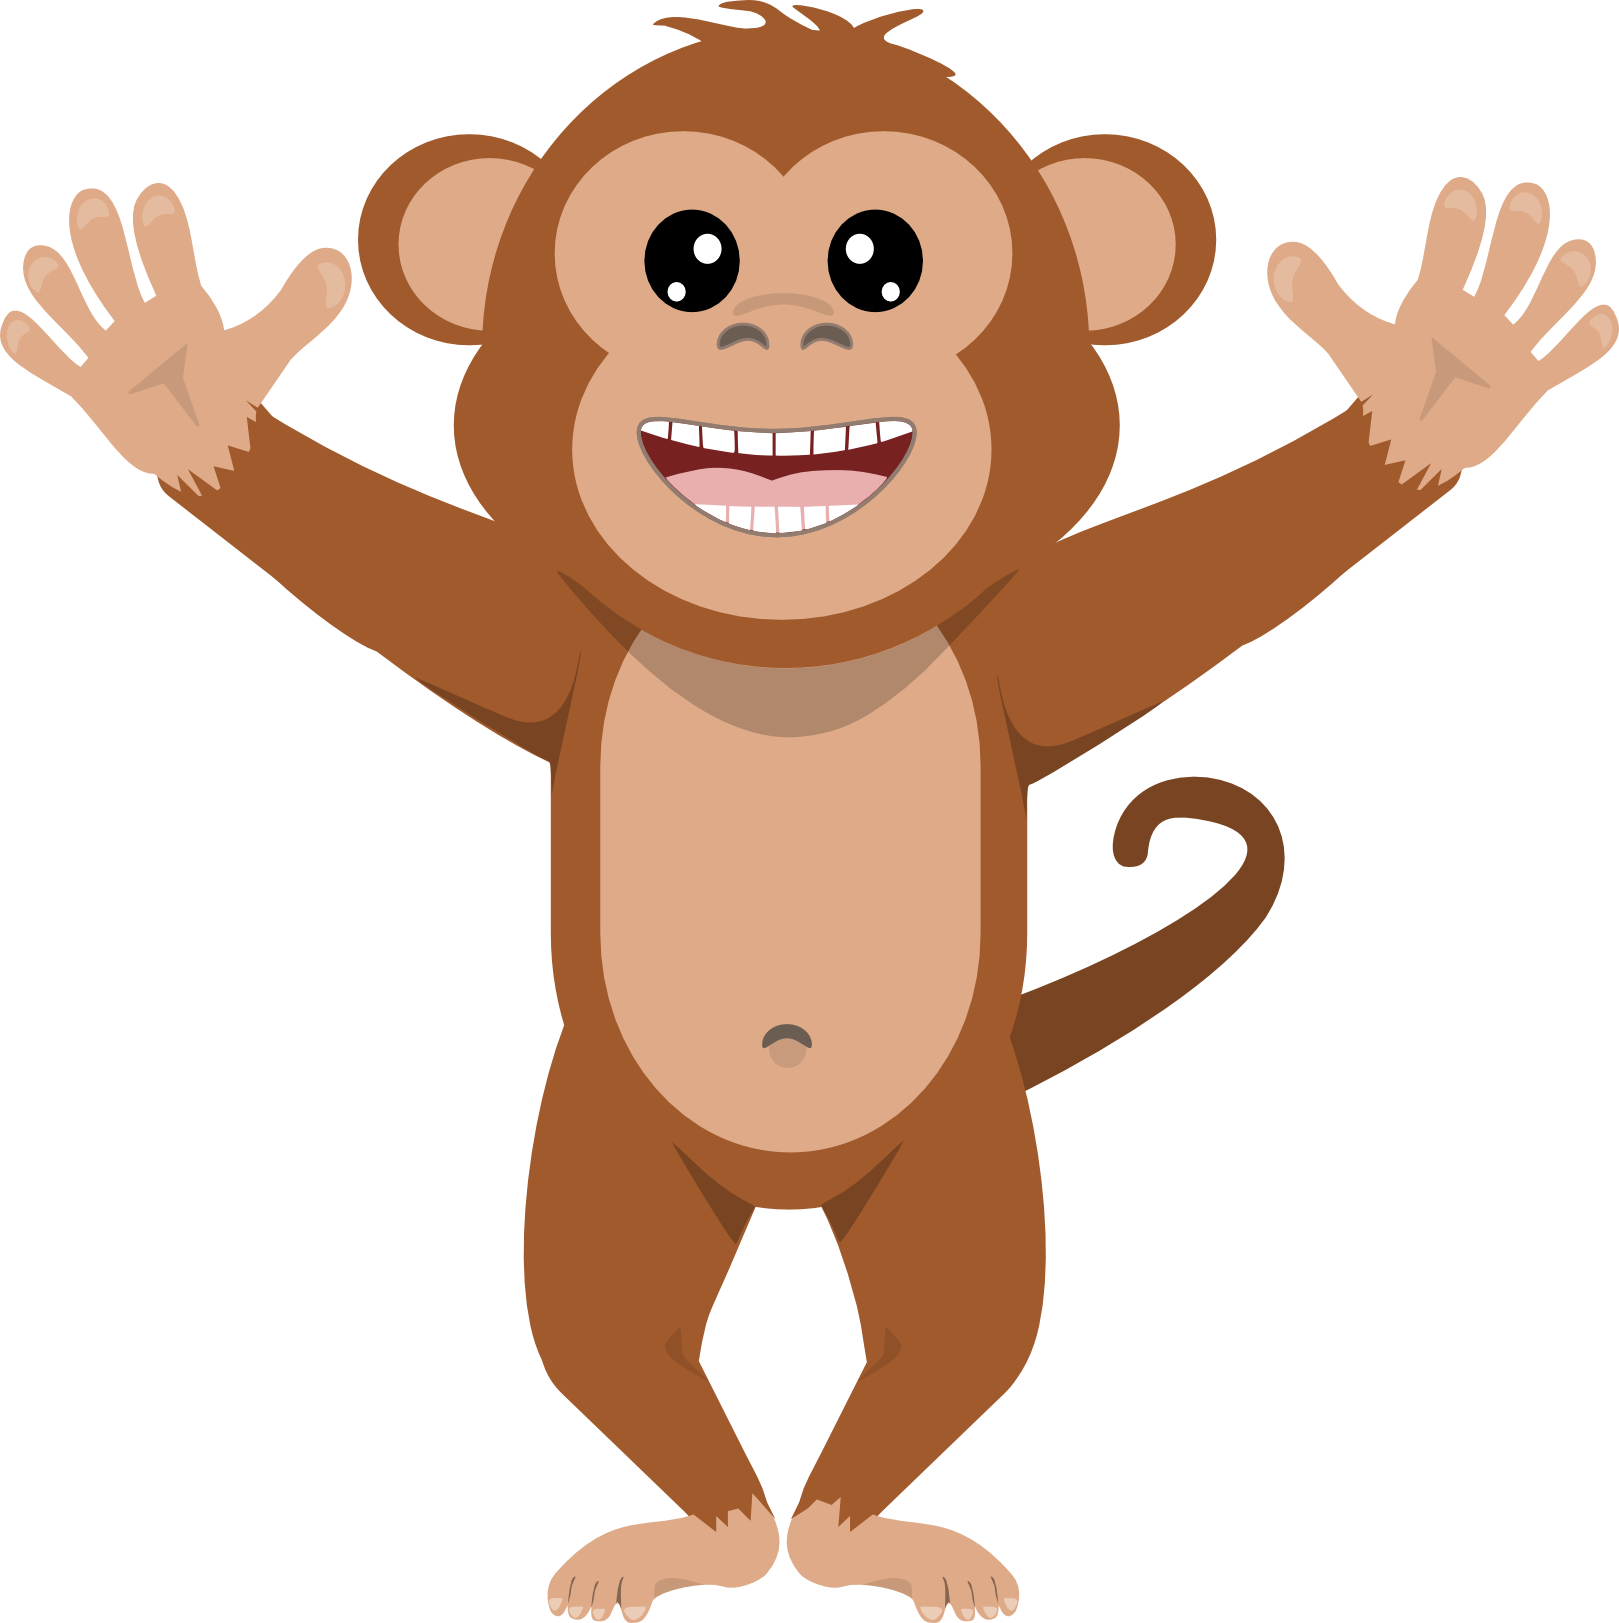 Monkeys clipart. Monkey png station